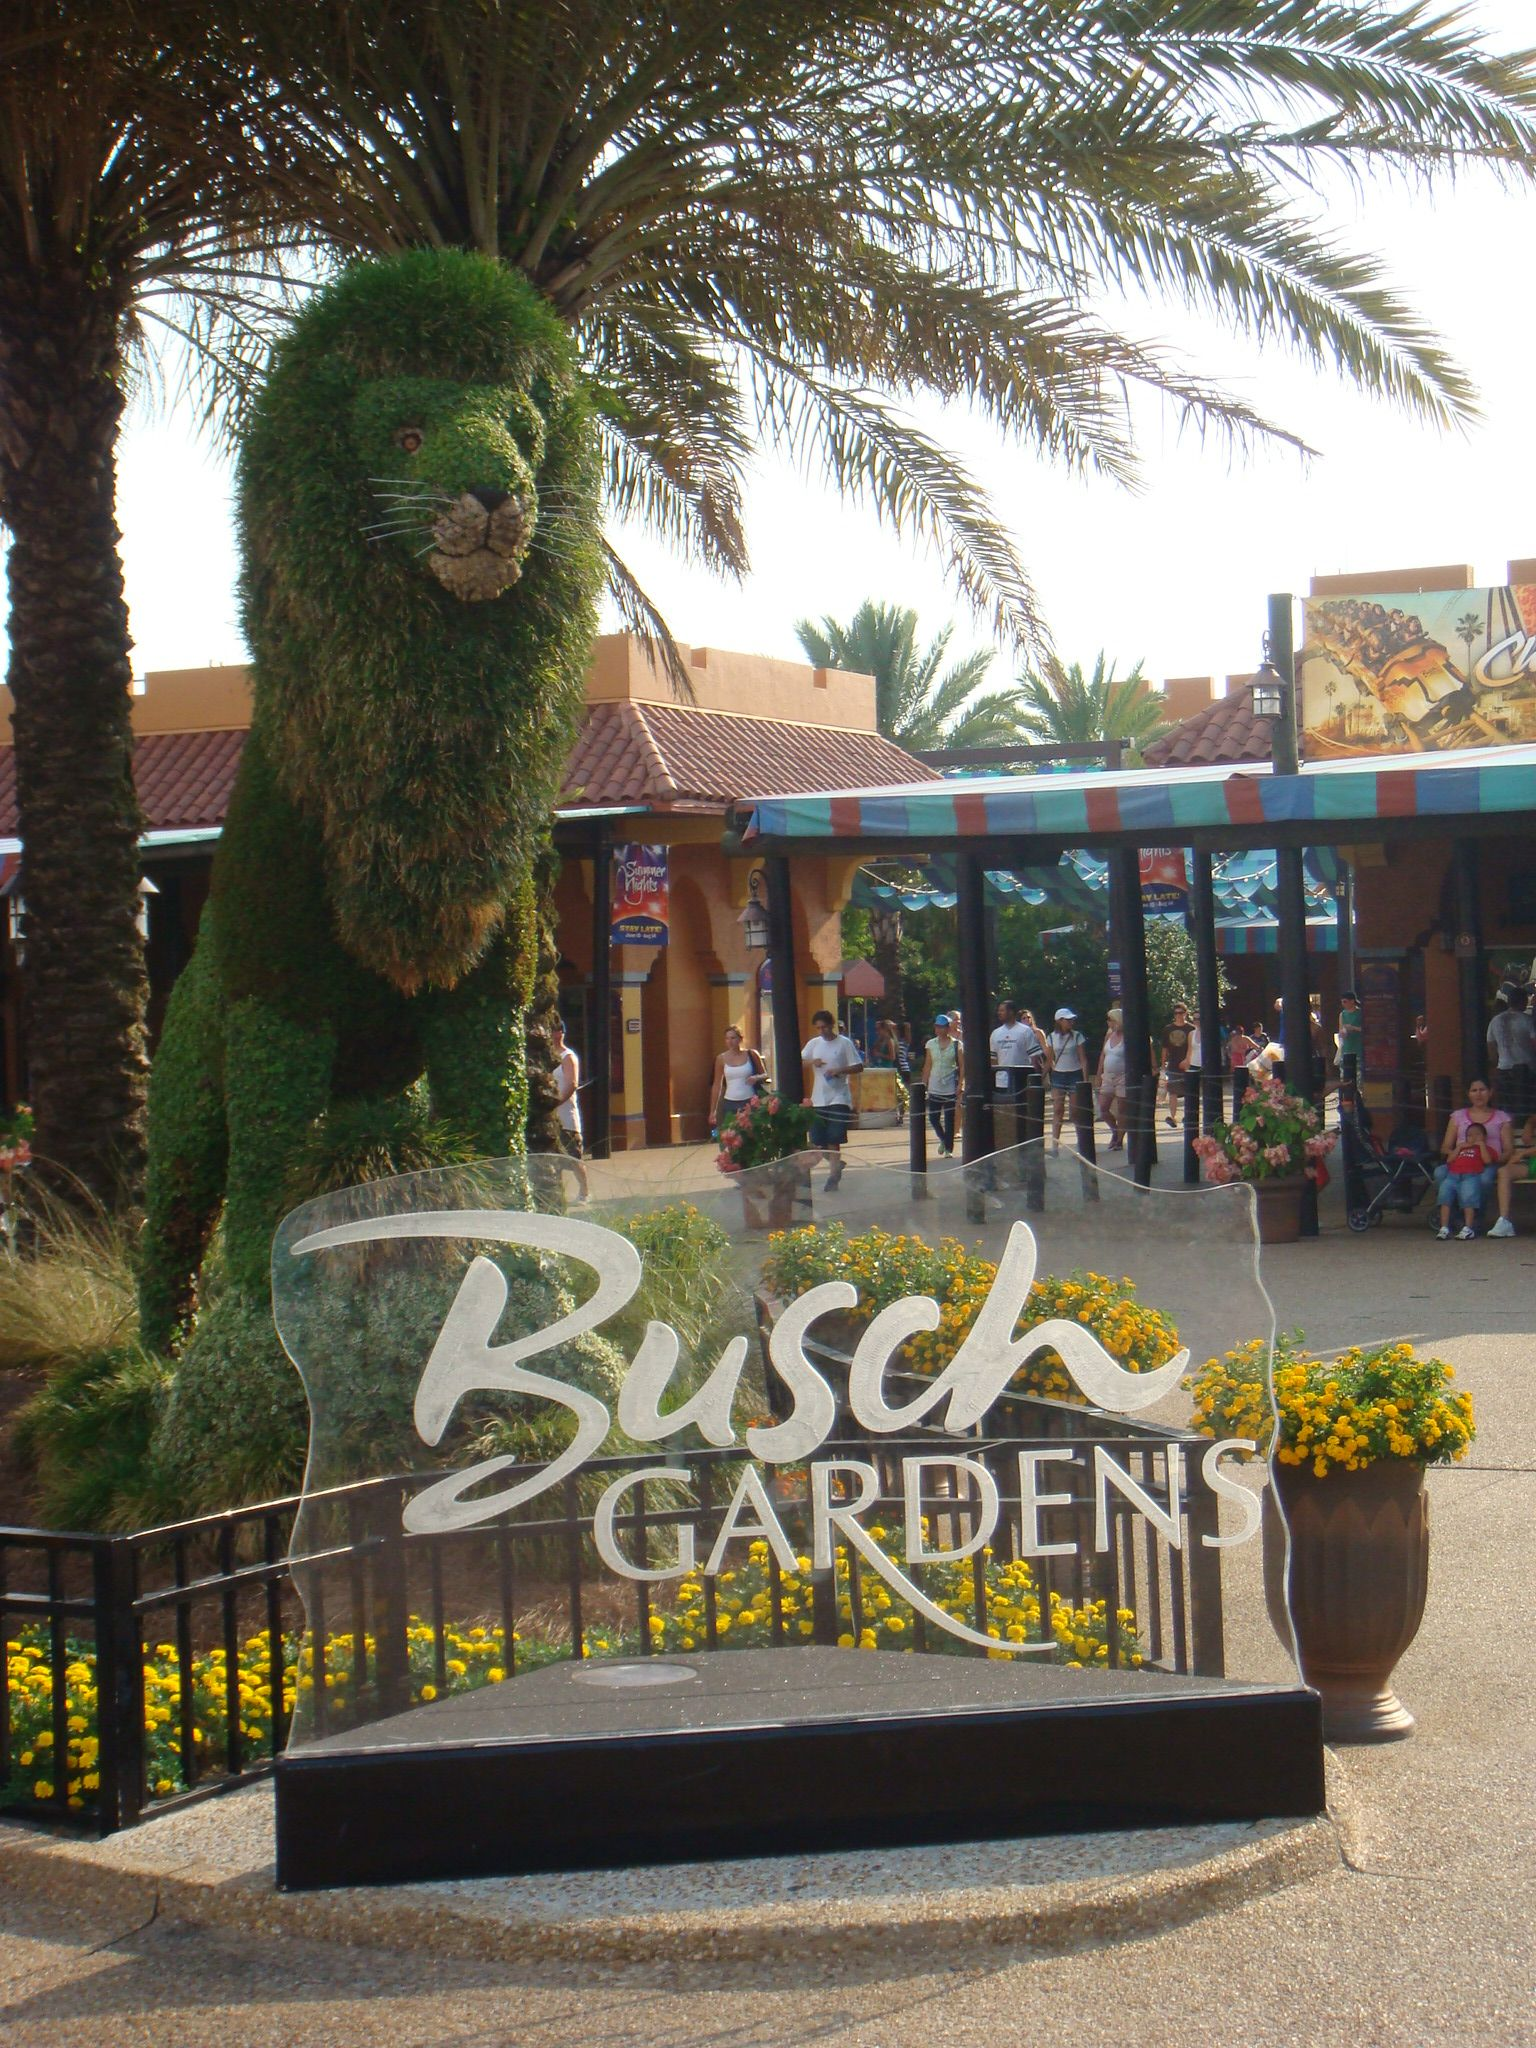 Busch Gardens Tampa Bay Florida Been There Done That